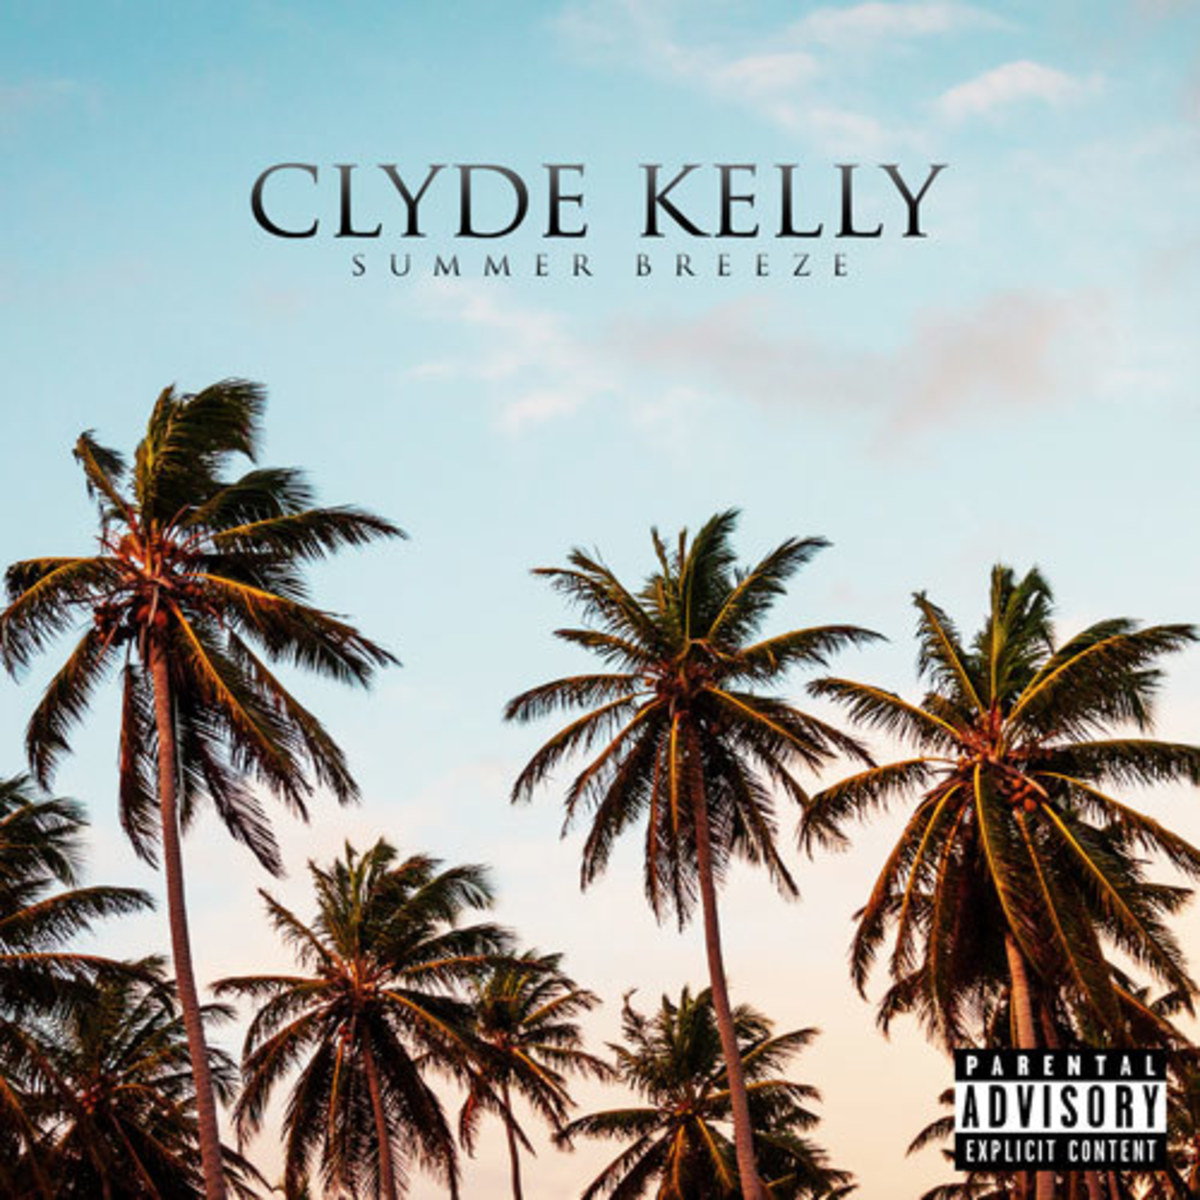 clyde-kelly-summer-breeze.jpg